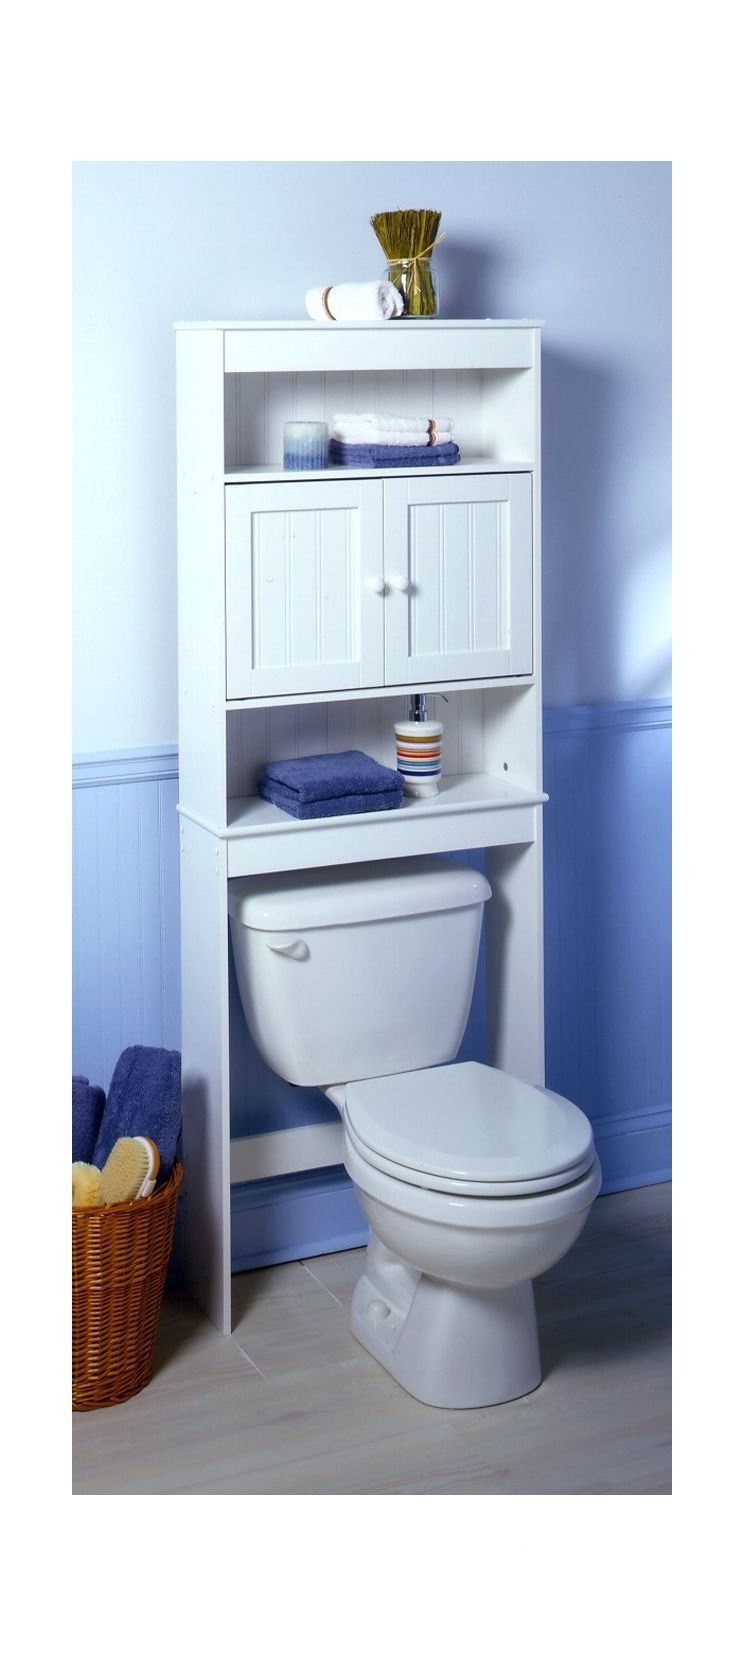 features space saver wall cabinet provides organization and storage for bathroom over the toilet - Bathroom Cabinets That Fit Over The Toilet